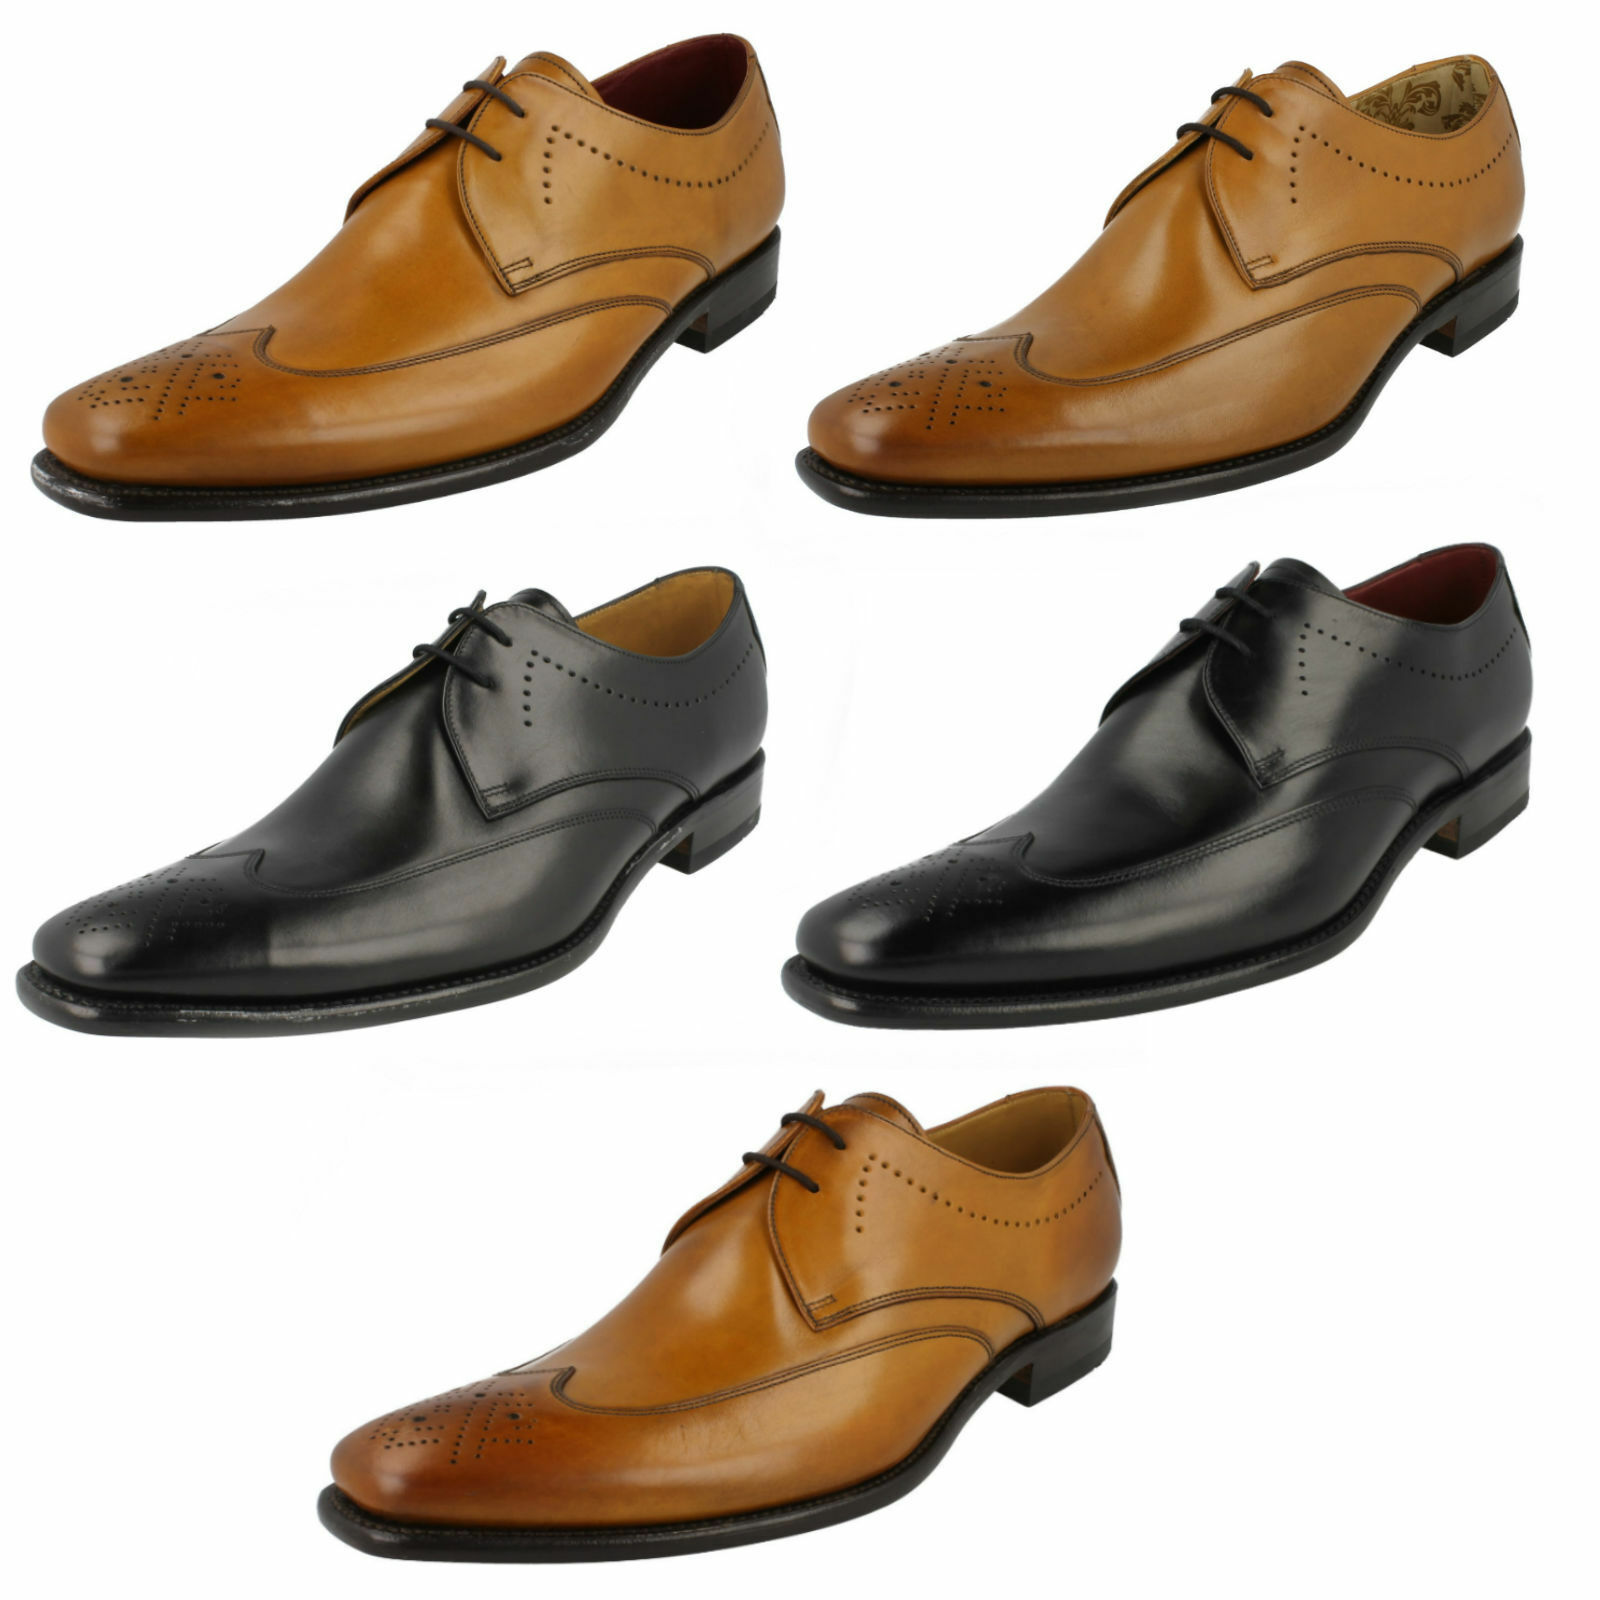 MENS LOAKE STITCH SMART WEDDING FORMAL LACE UP LEATHER SEMI BROGUE schuhe Größe